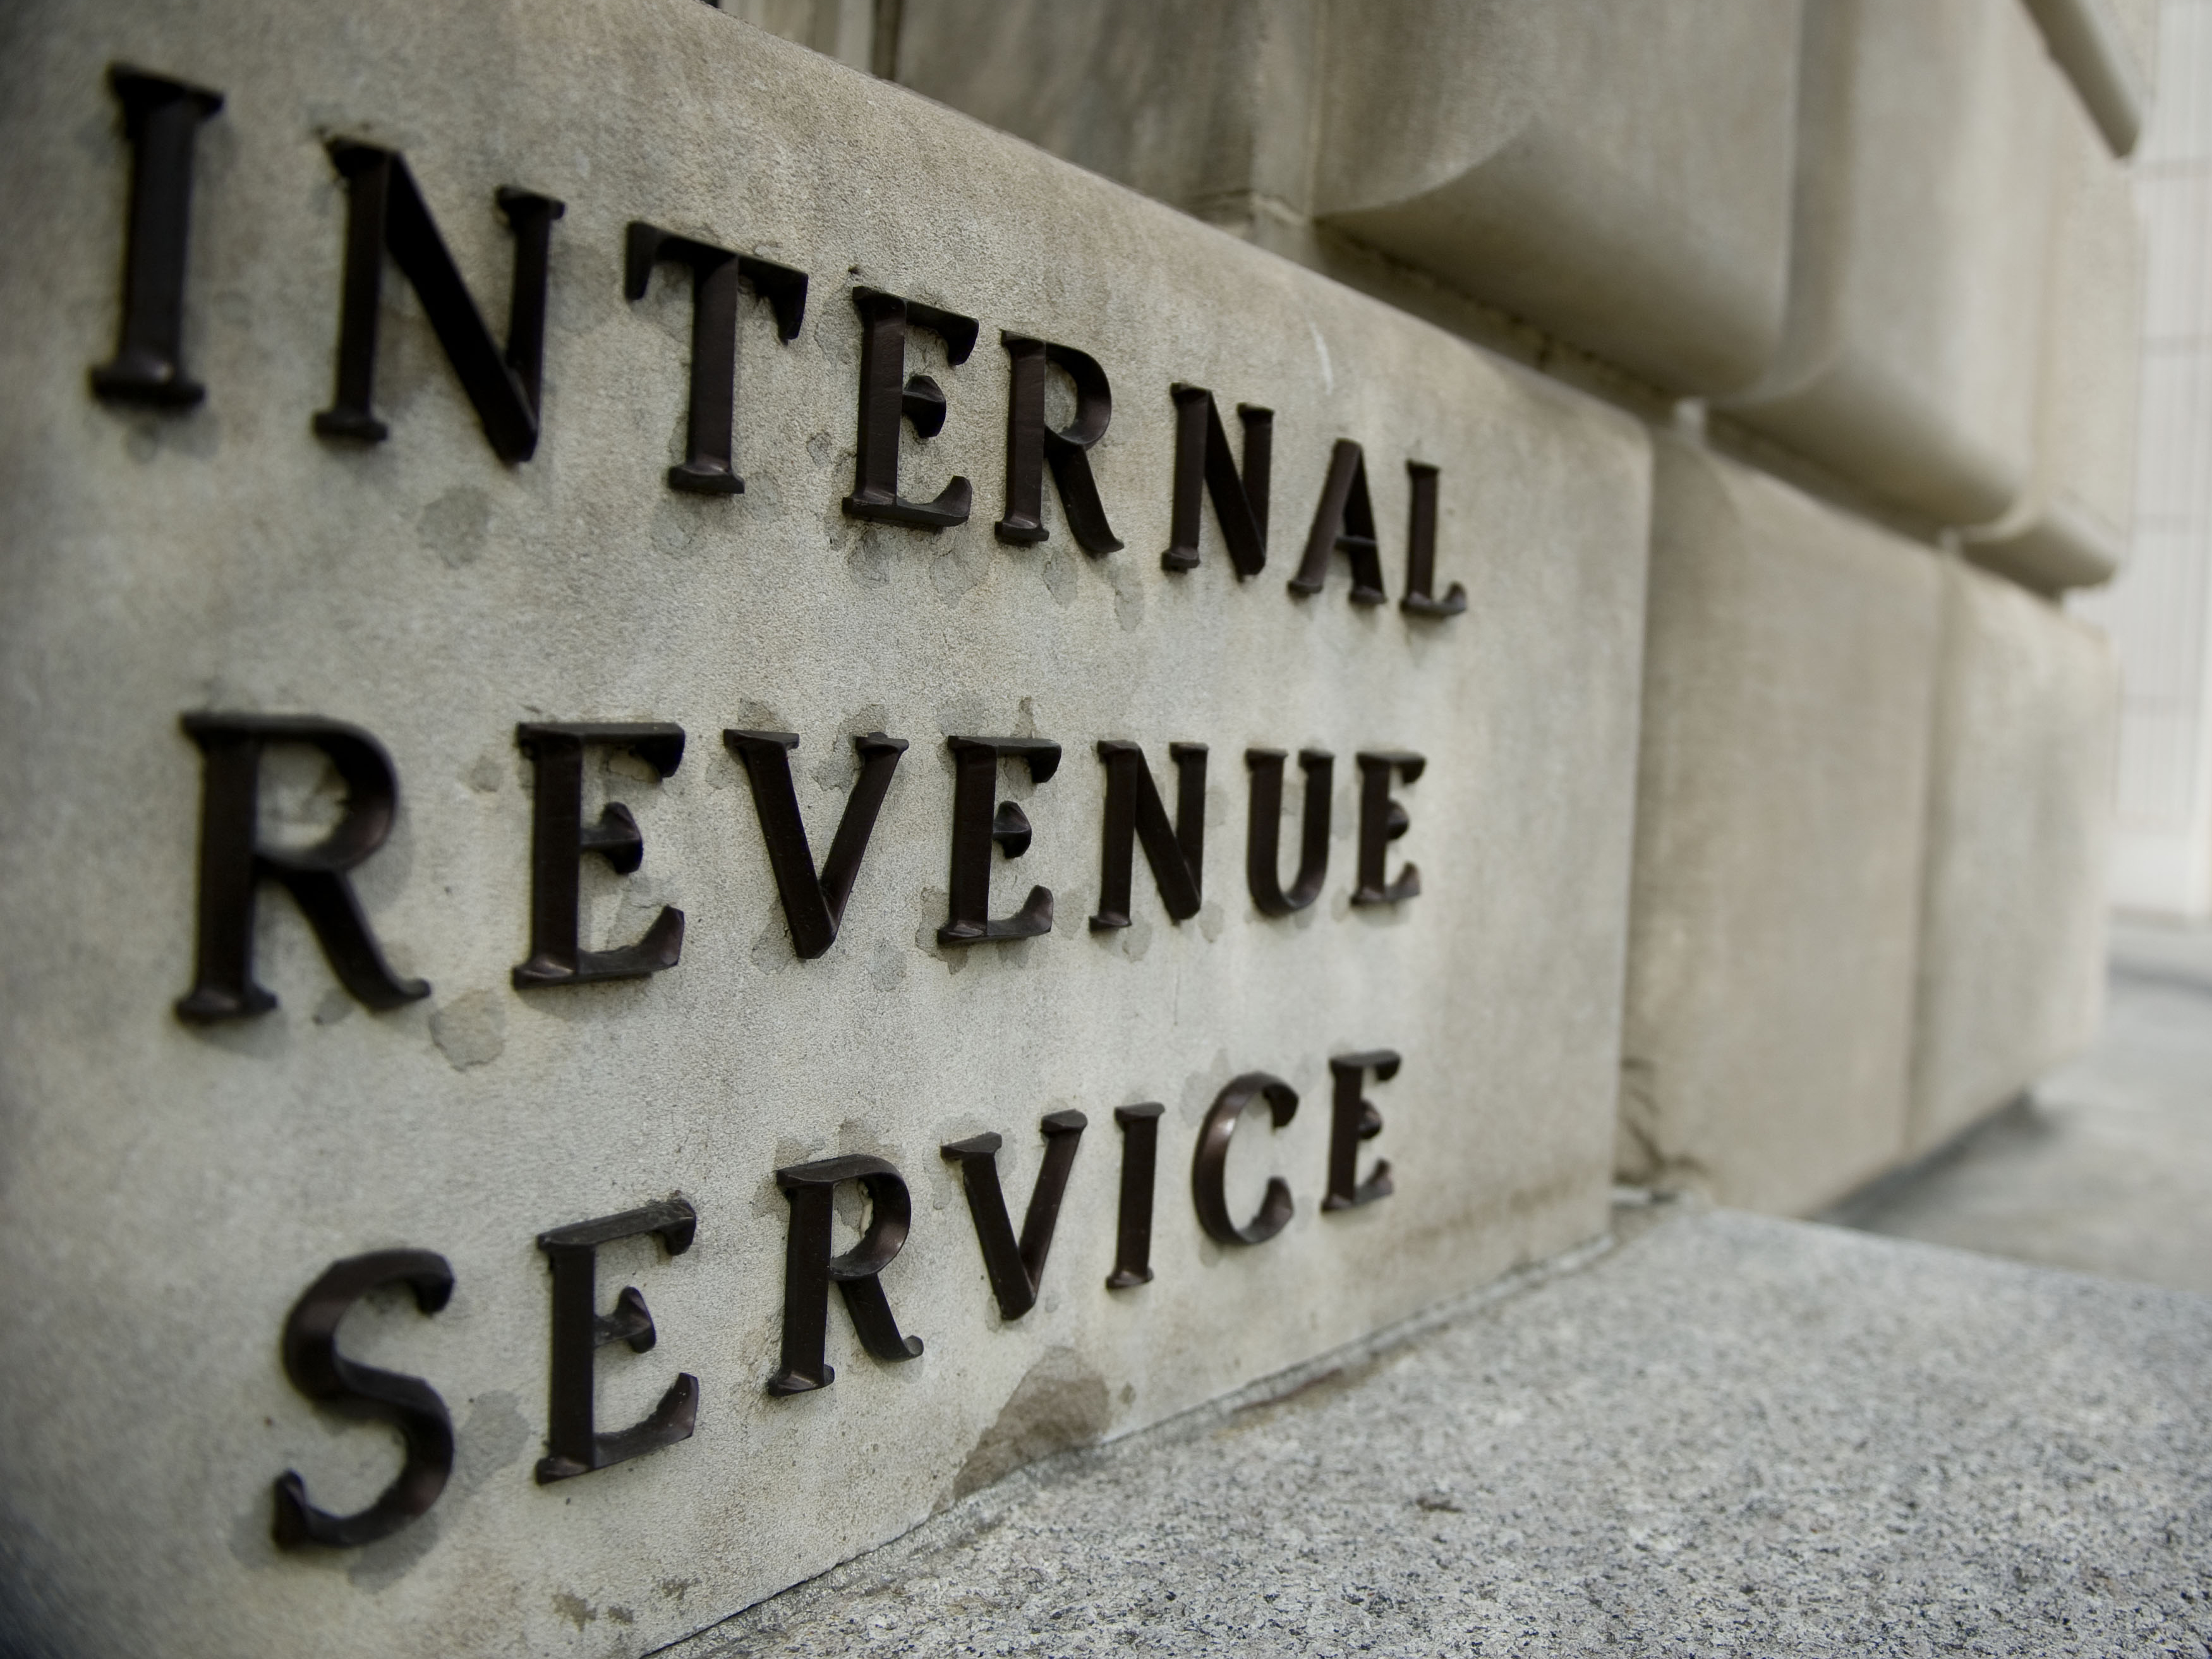 Omitting certain forms allows irs to audit forever irs to audit forever falaconquin